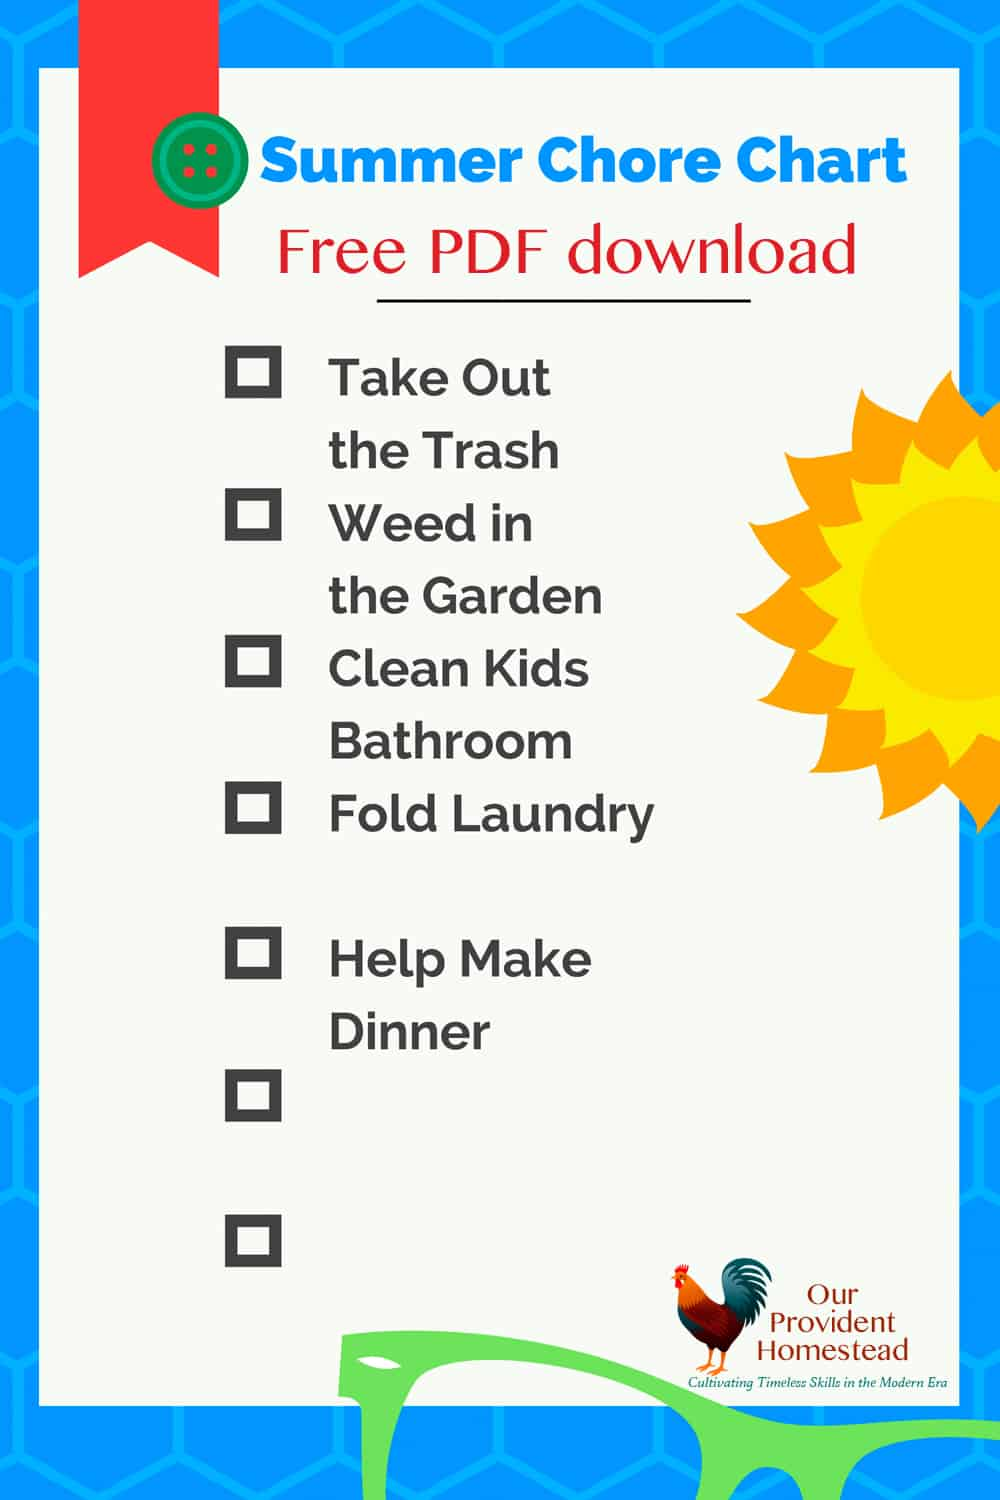 Do you think your kids should have chores over the summer? Click to get the free PDF download of our blank summer chore chart and get started today! #summer #kidschores #chorechart #homesteading